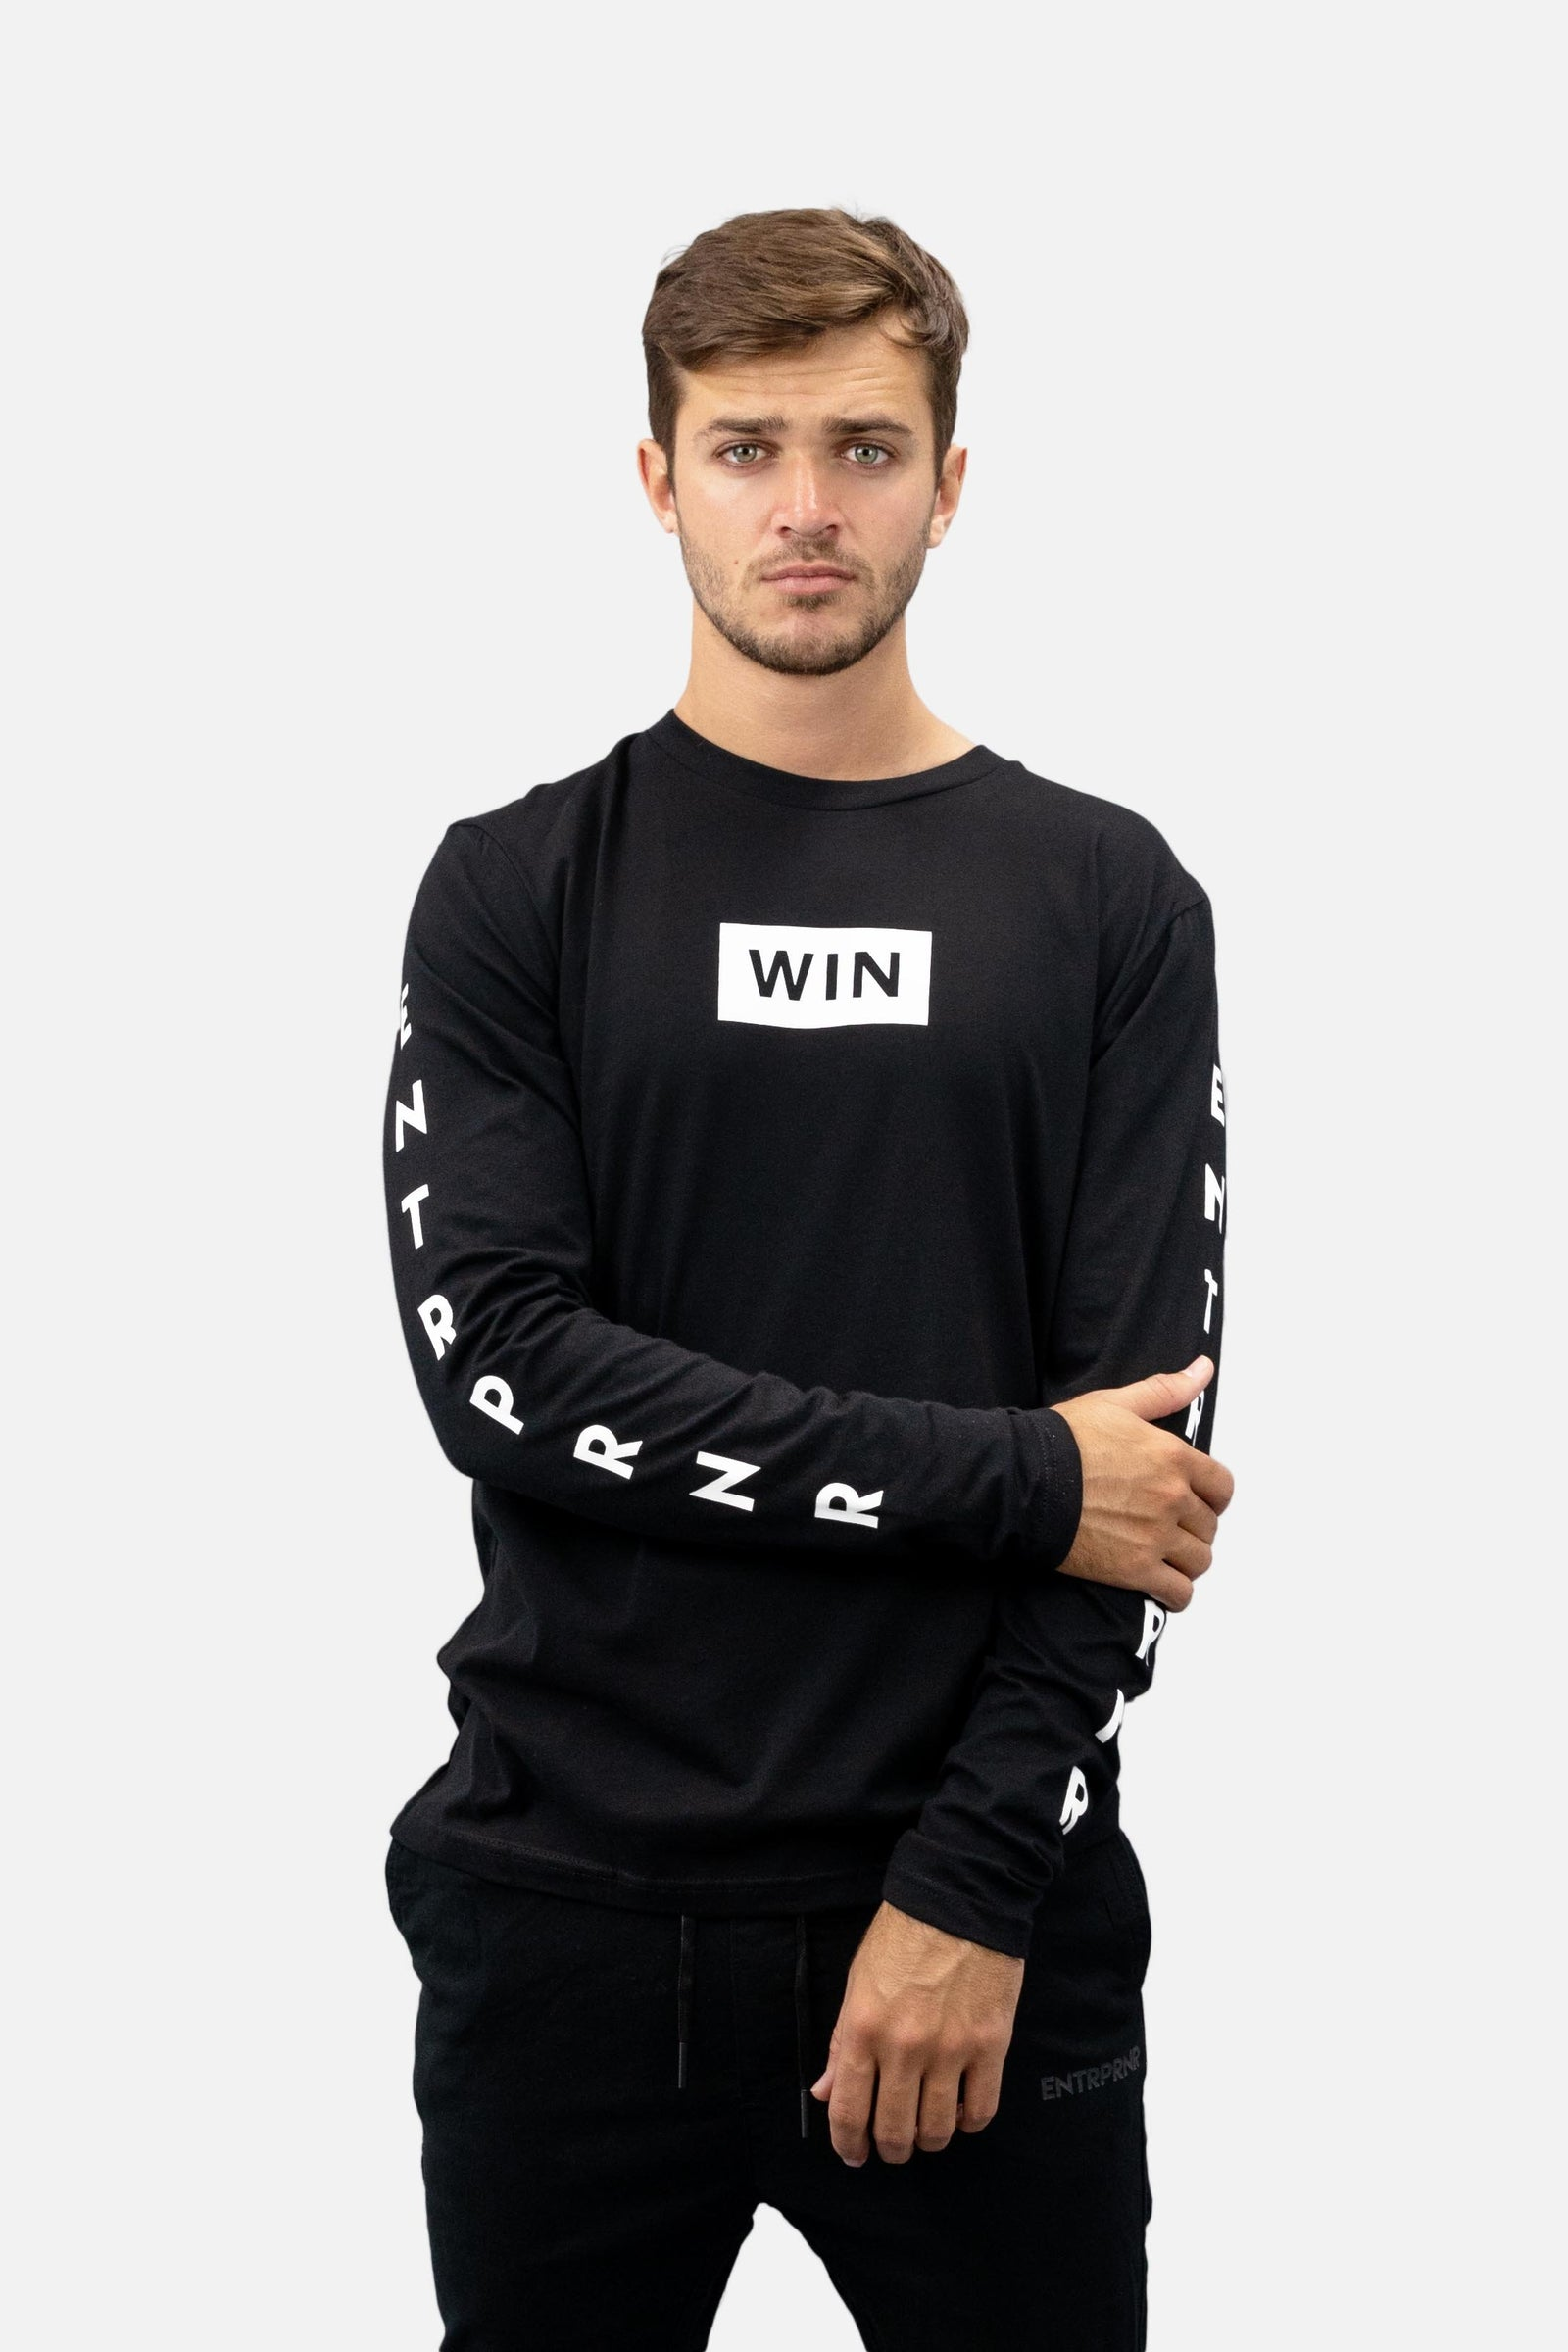 Shirts - ENTRPRNR WIN Long Sleeve - Black